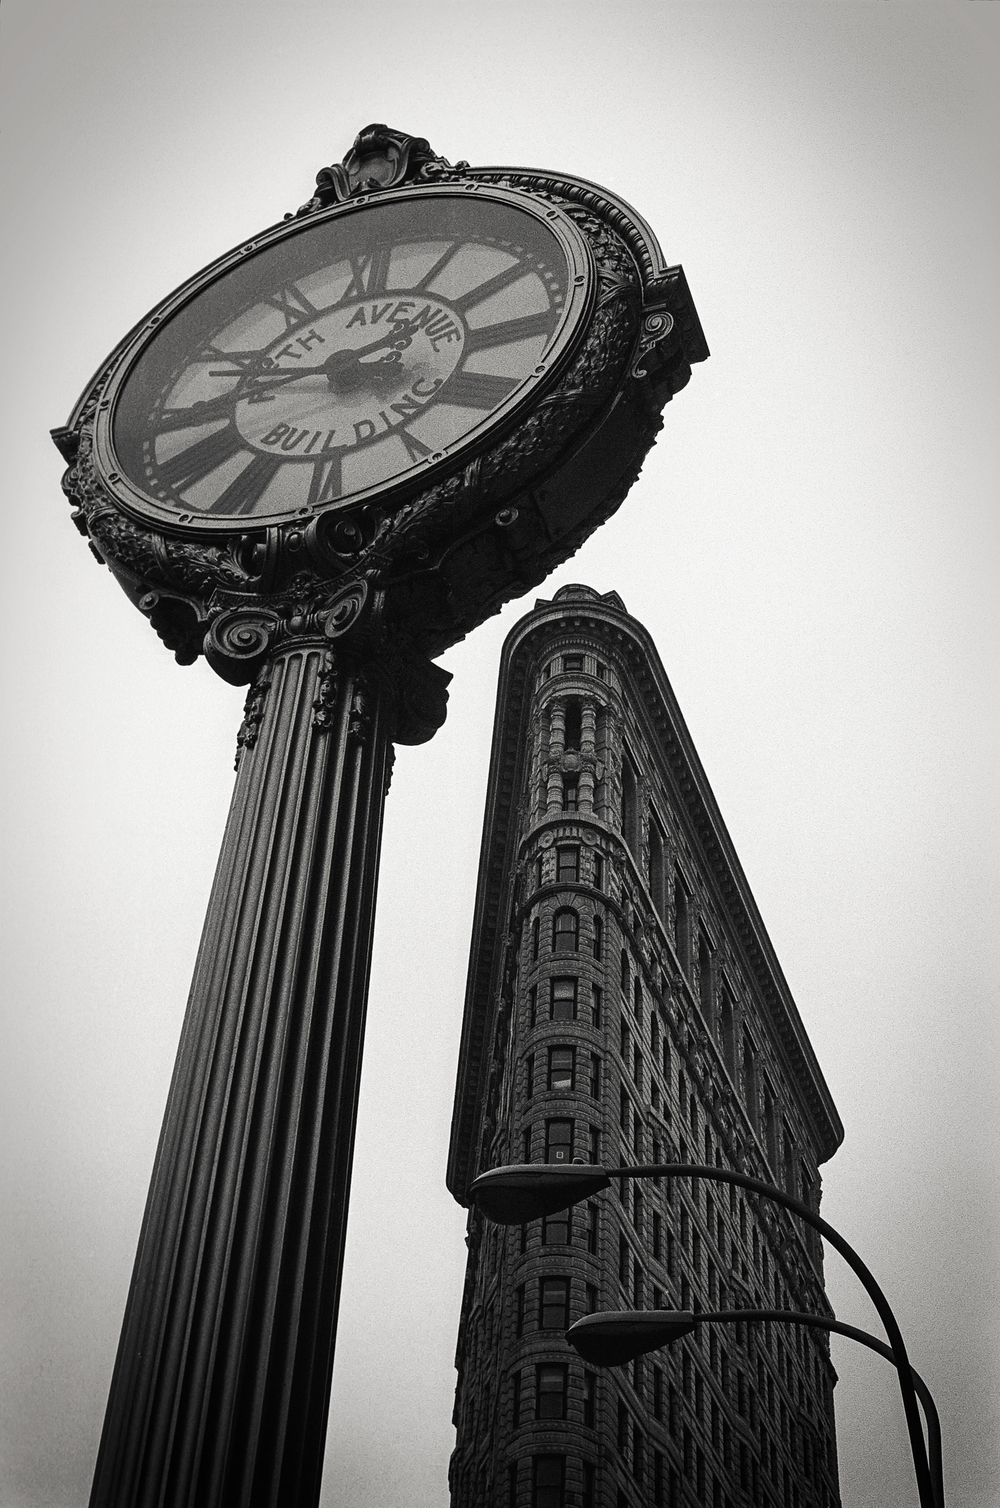 5th Ave building clock, Flatiron building, NY 1997.